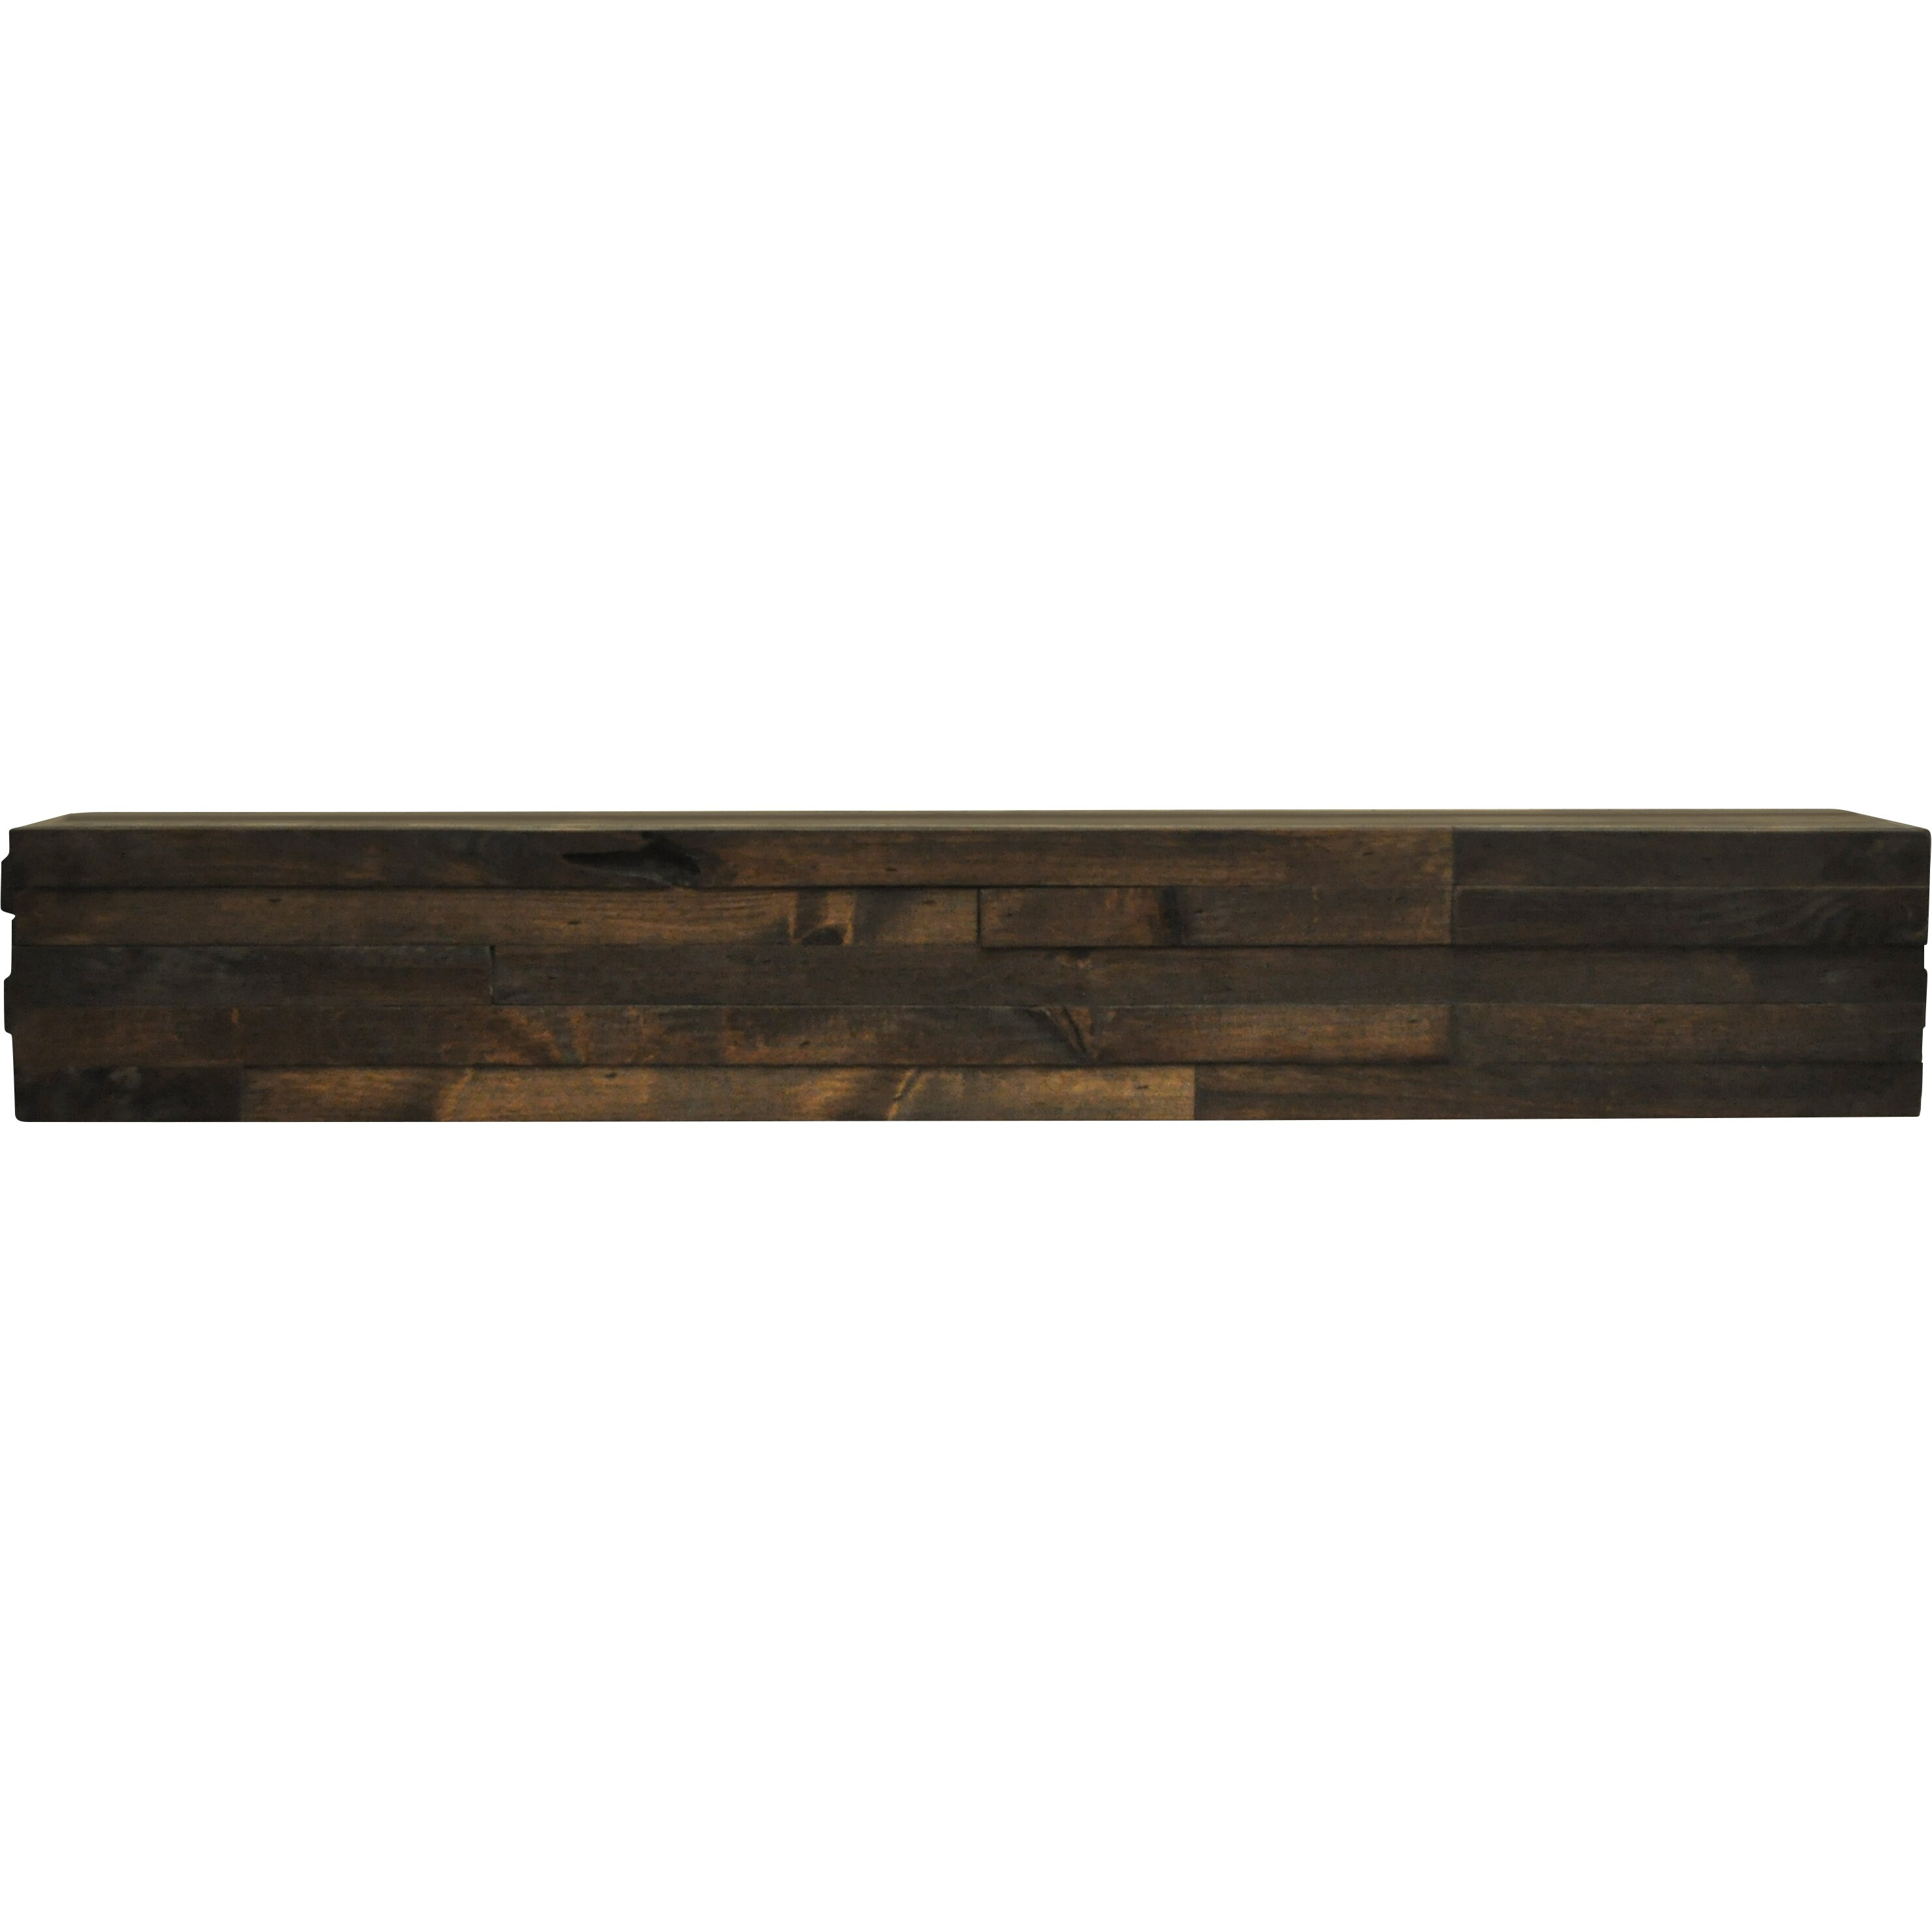 Dogberry collections modern fireplace mantel shelf reviews wayfair supply - Beneficial contemporary fireplace mantel shelves ...